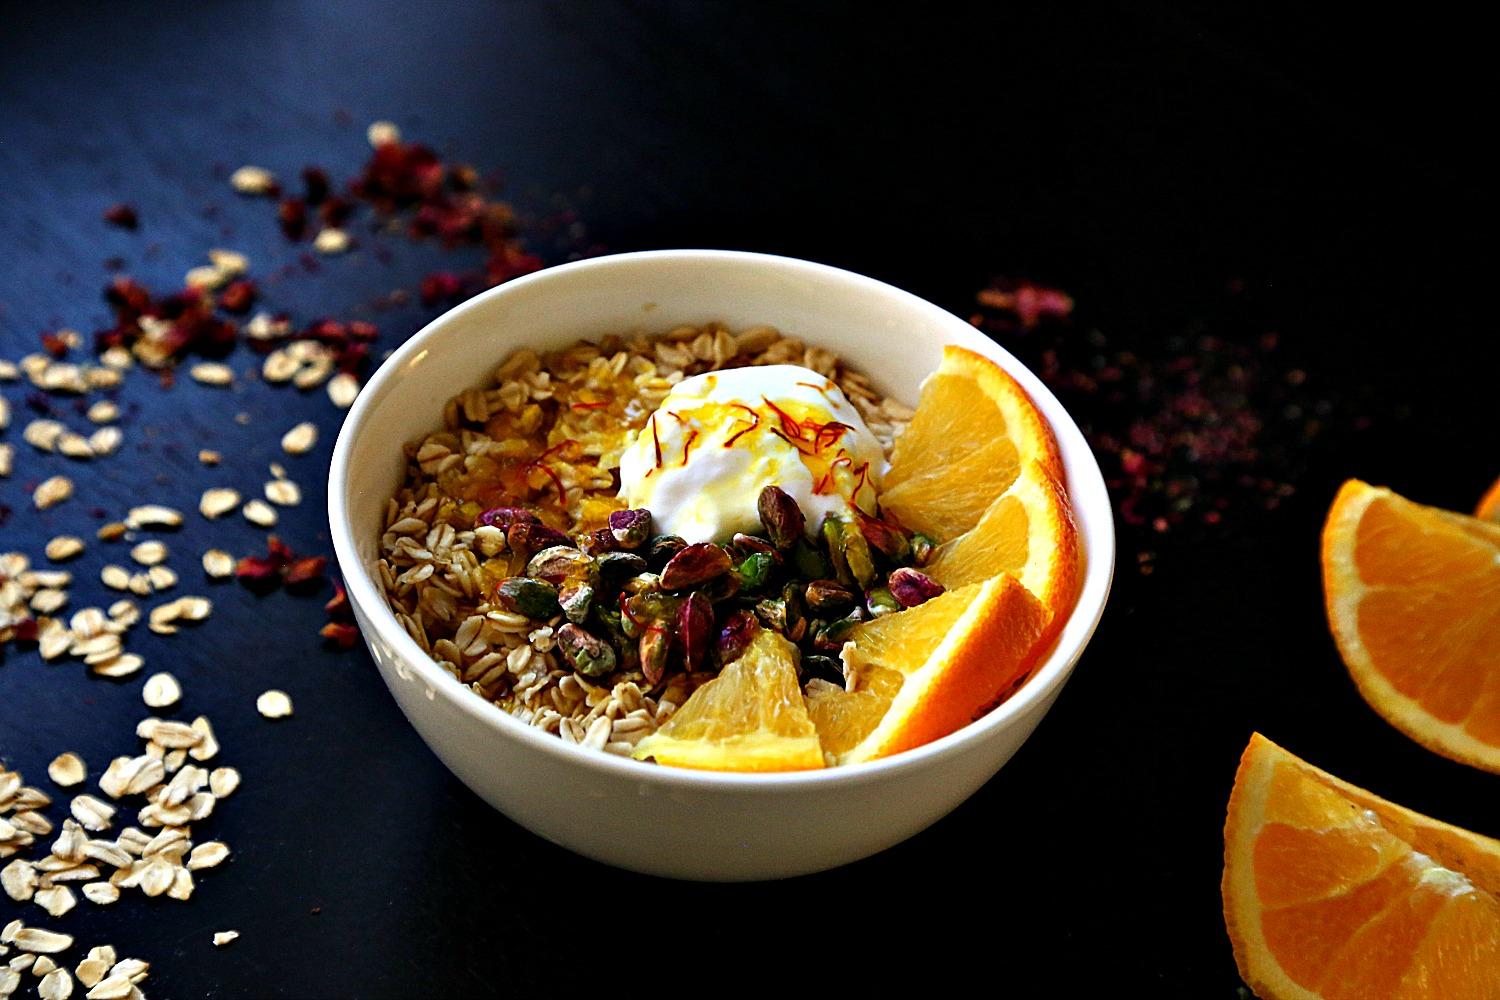 Coconut oatmeal with saffron orange syrup